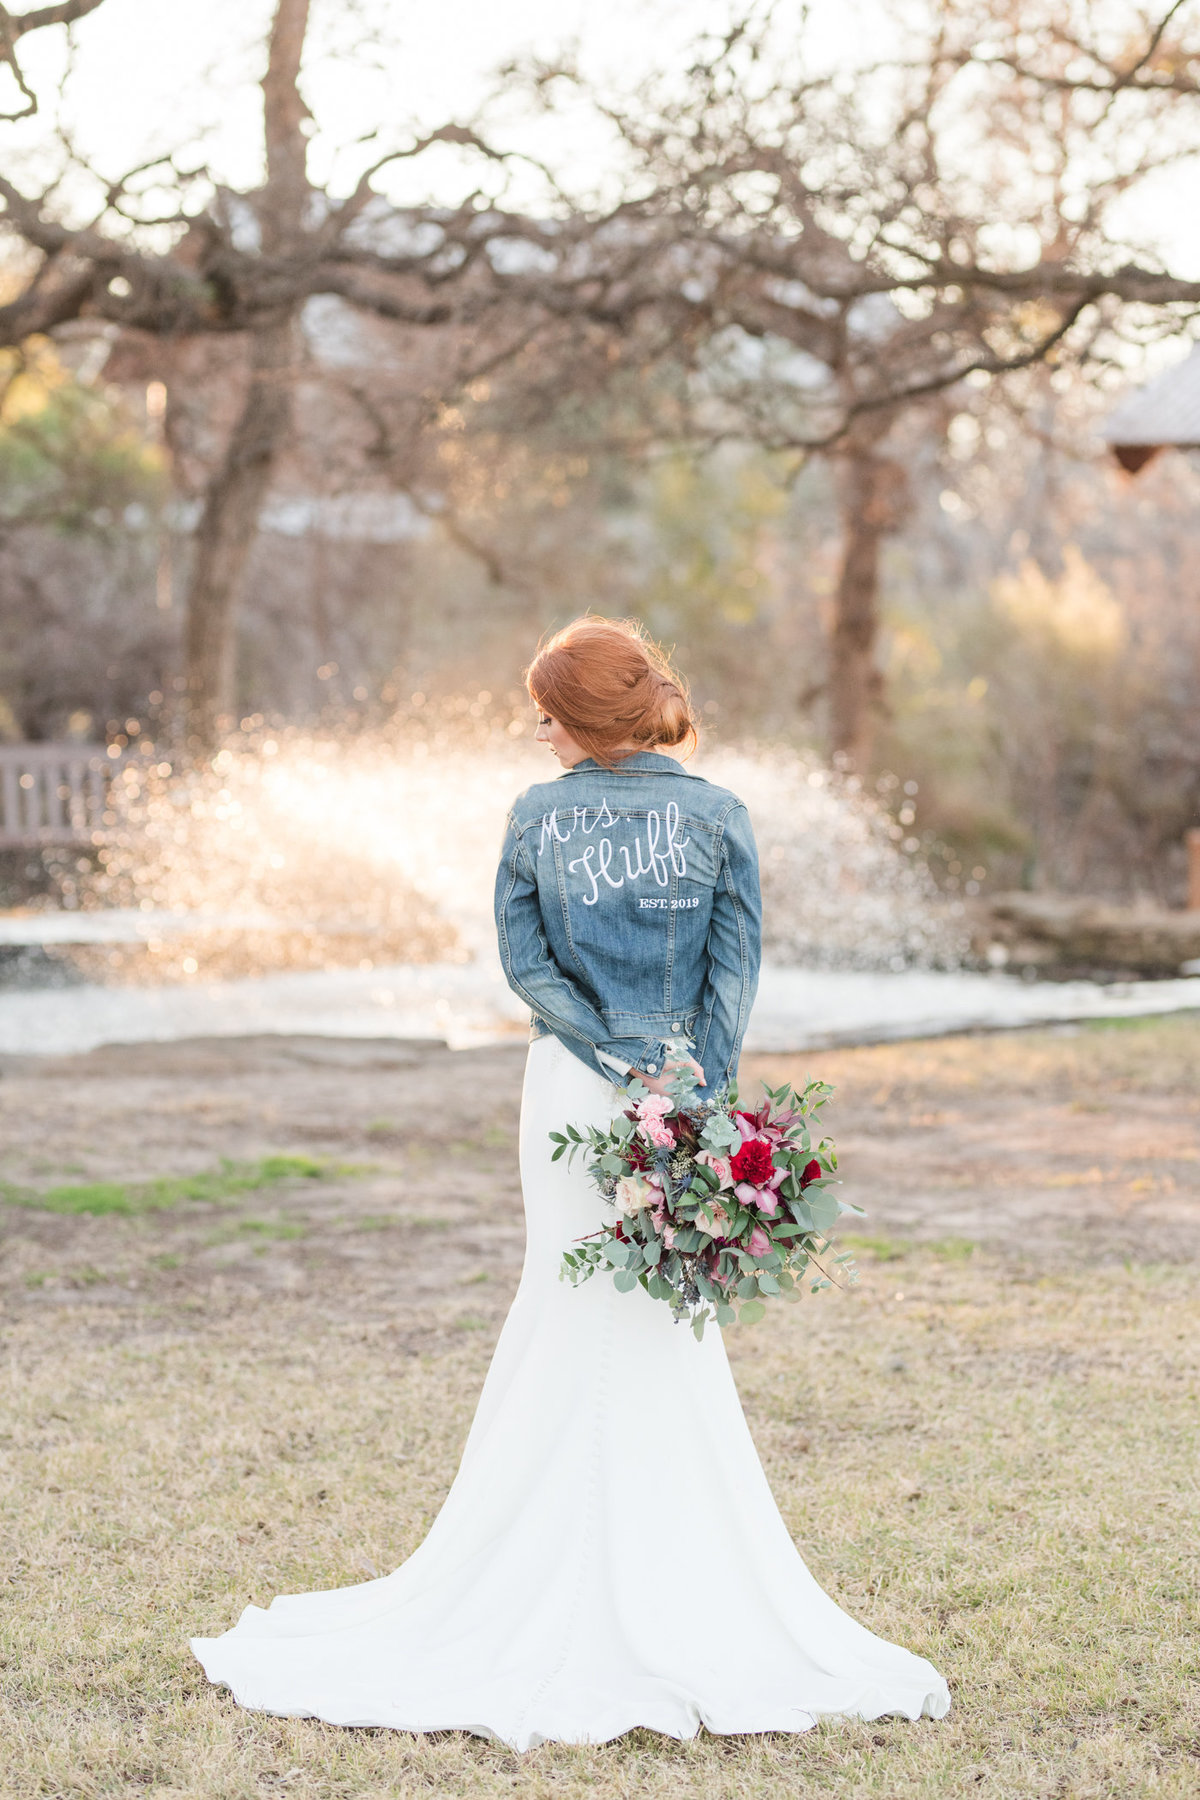 Cedar Skies Barn Bridal Portrait in jean jacket